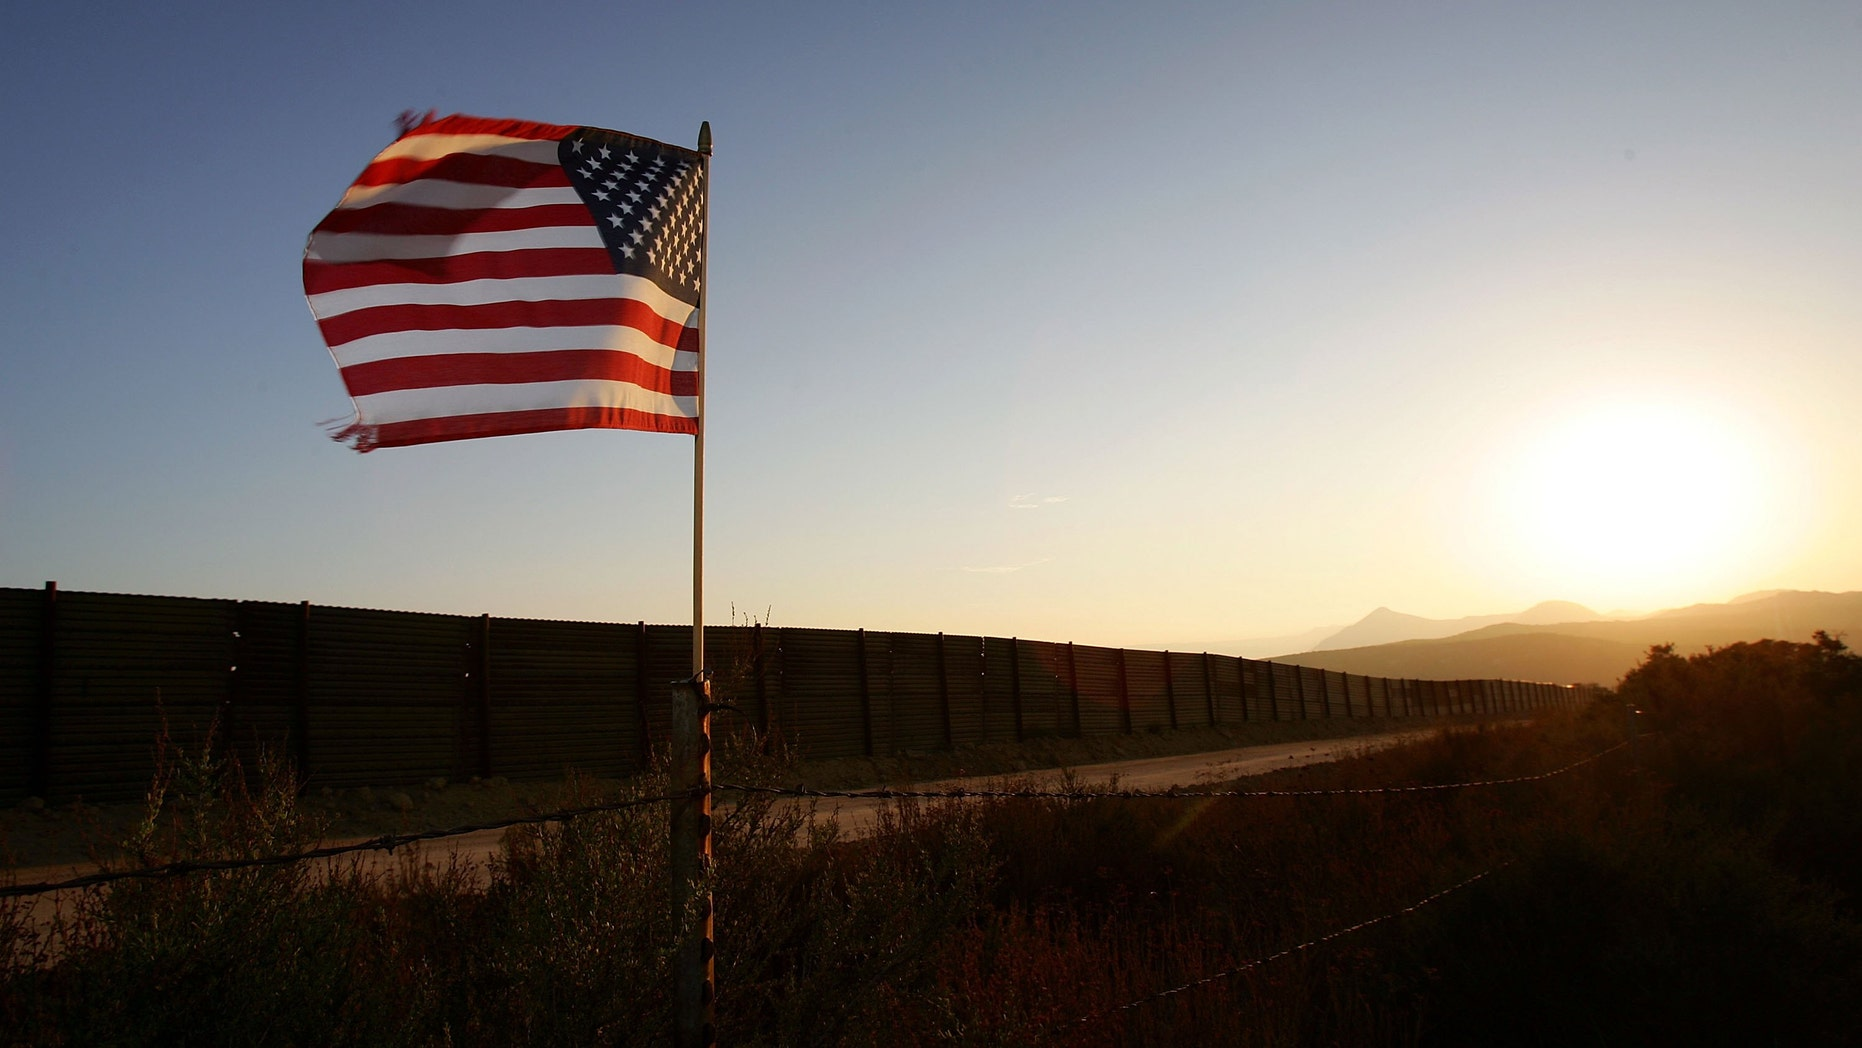 CAMPO, CA - OCTOBER 08:  A U.S. flag put up by activists who oppose illegal immigration flies near the US-Mexico border fence in an area where they search for border crossers October 8, 2006 near Campo, California. The activists want the fence expanded into a fully-lit double-fenced barrier between the US (foreground) and Mexico. US Fish and Wildlife Service wardens and environmentalists warn that a proposed plan by US lawmakers to construct 700 miles of double fencing along the 2,000-mile US-Mexico border, in an attempt to wall-out illegal immigrants, would also harm rare wildlife. Wildlife experts say cactus-pollinating insects would fly around fence lights, birds that migrate by starlight in the desert wilderness would be confused, and large mammals such as jaguars, Mexican wolves, Sonoran pronghorn antelope, and desert bighorn sheep would be blocked from migrating across the international border, from California to Texas.  (Photo by David McNew/Getty Images)